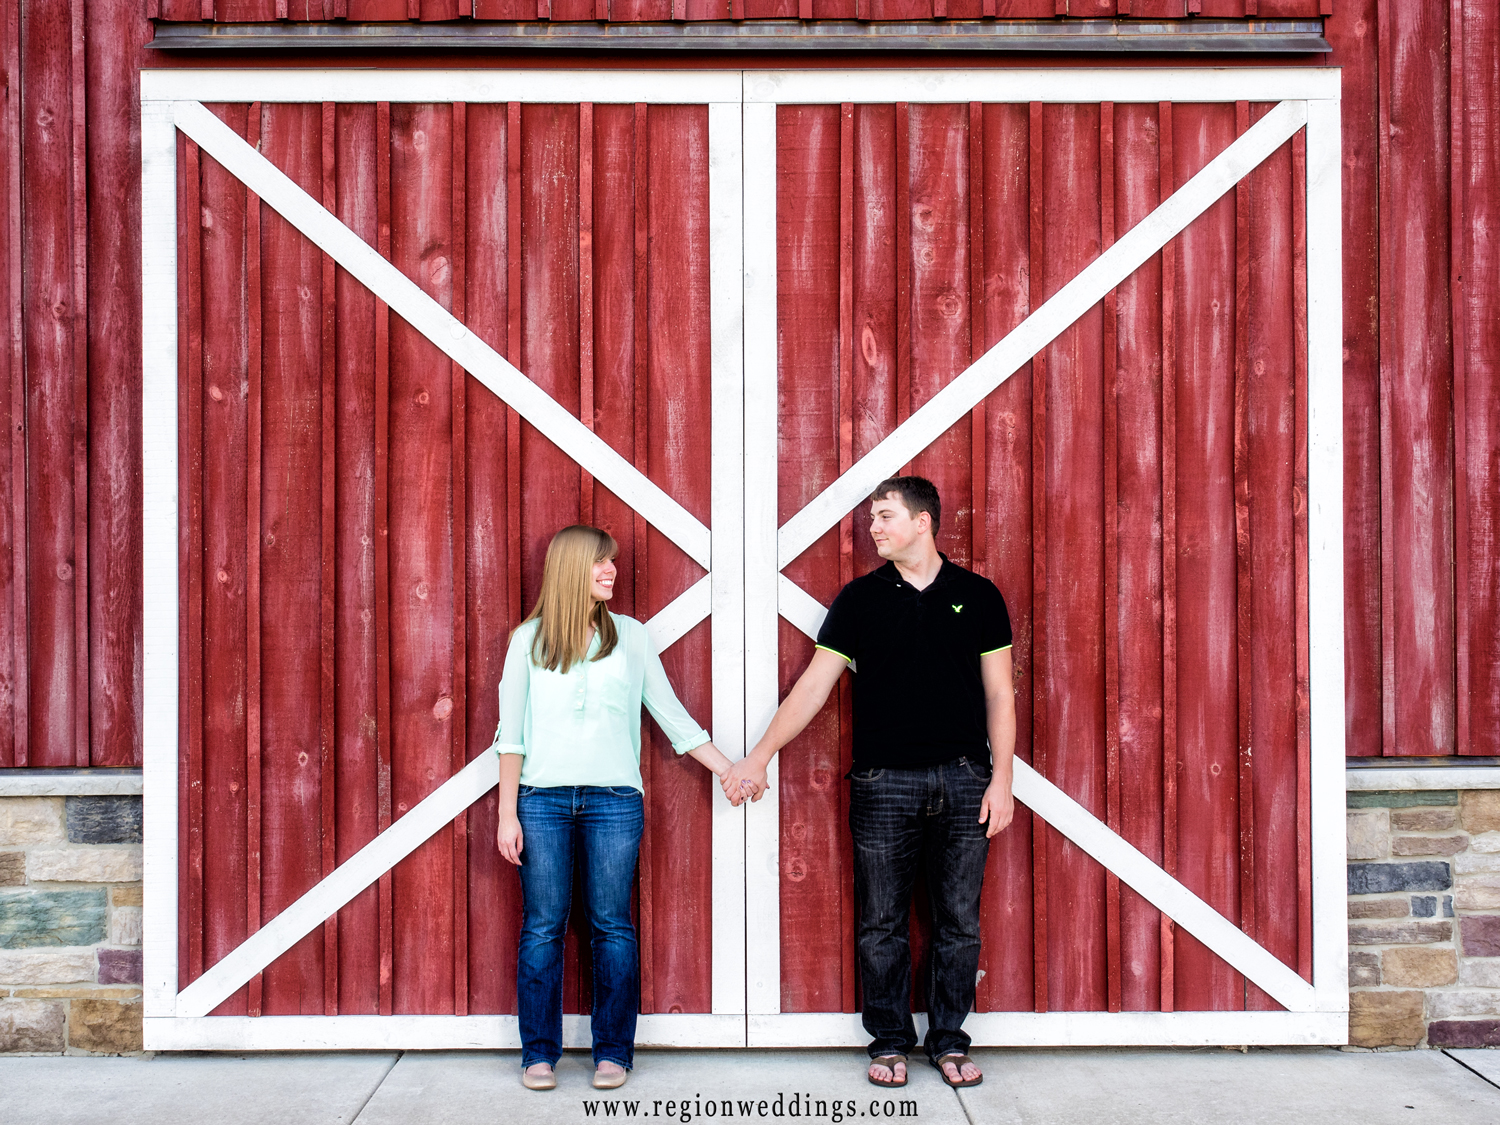 Engagement photo in front of the red barn doors at County Line Orchard.